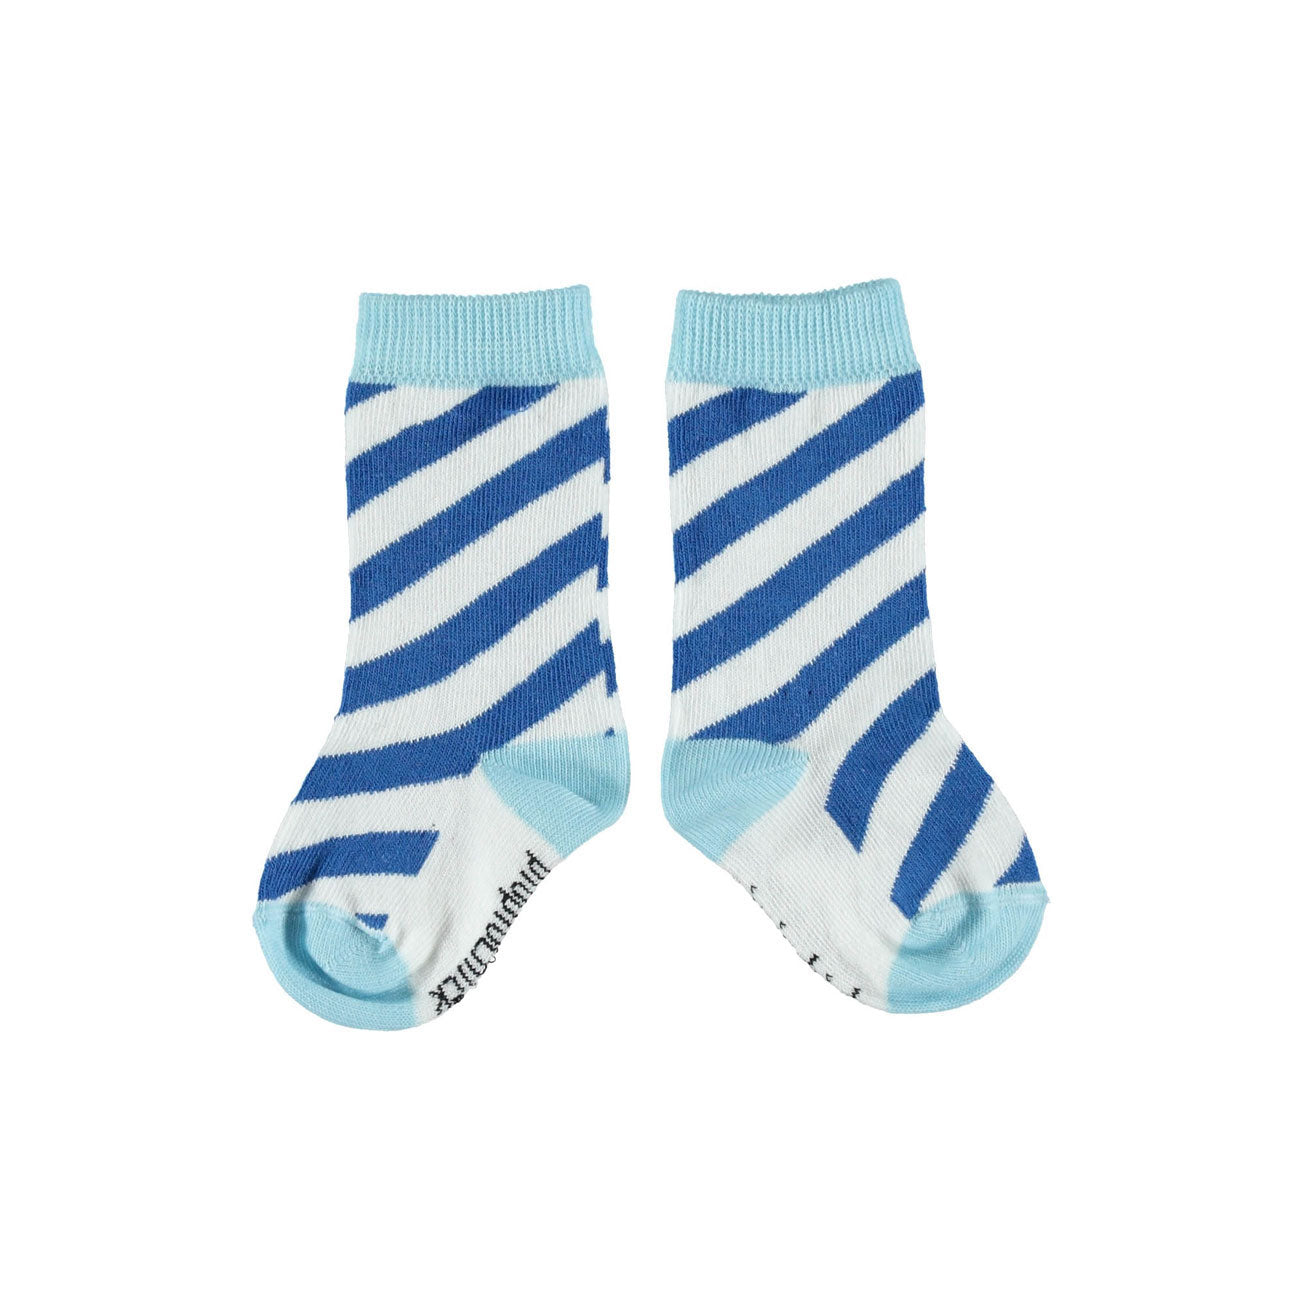 Piupiuchick Indigo Diagonal Striped Socks